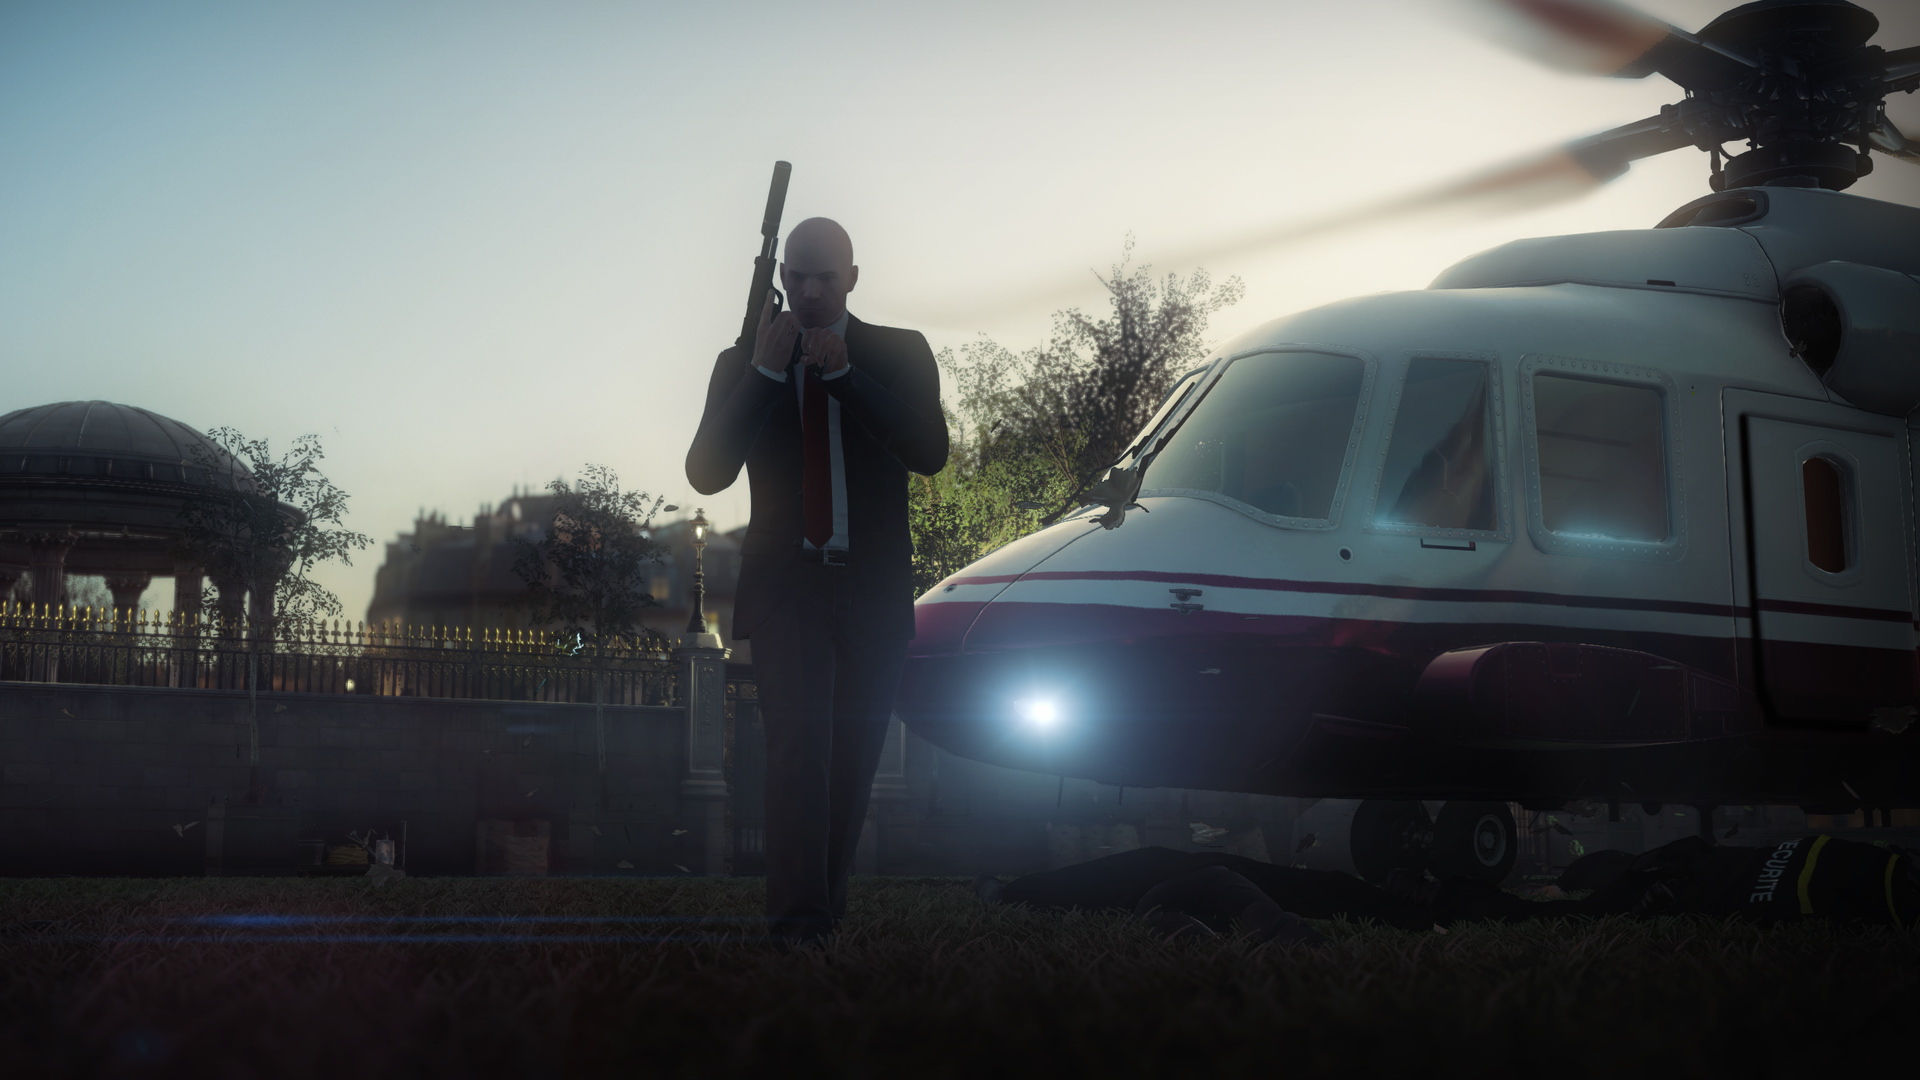 hitman_screenshot_e32015__01_1434556739